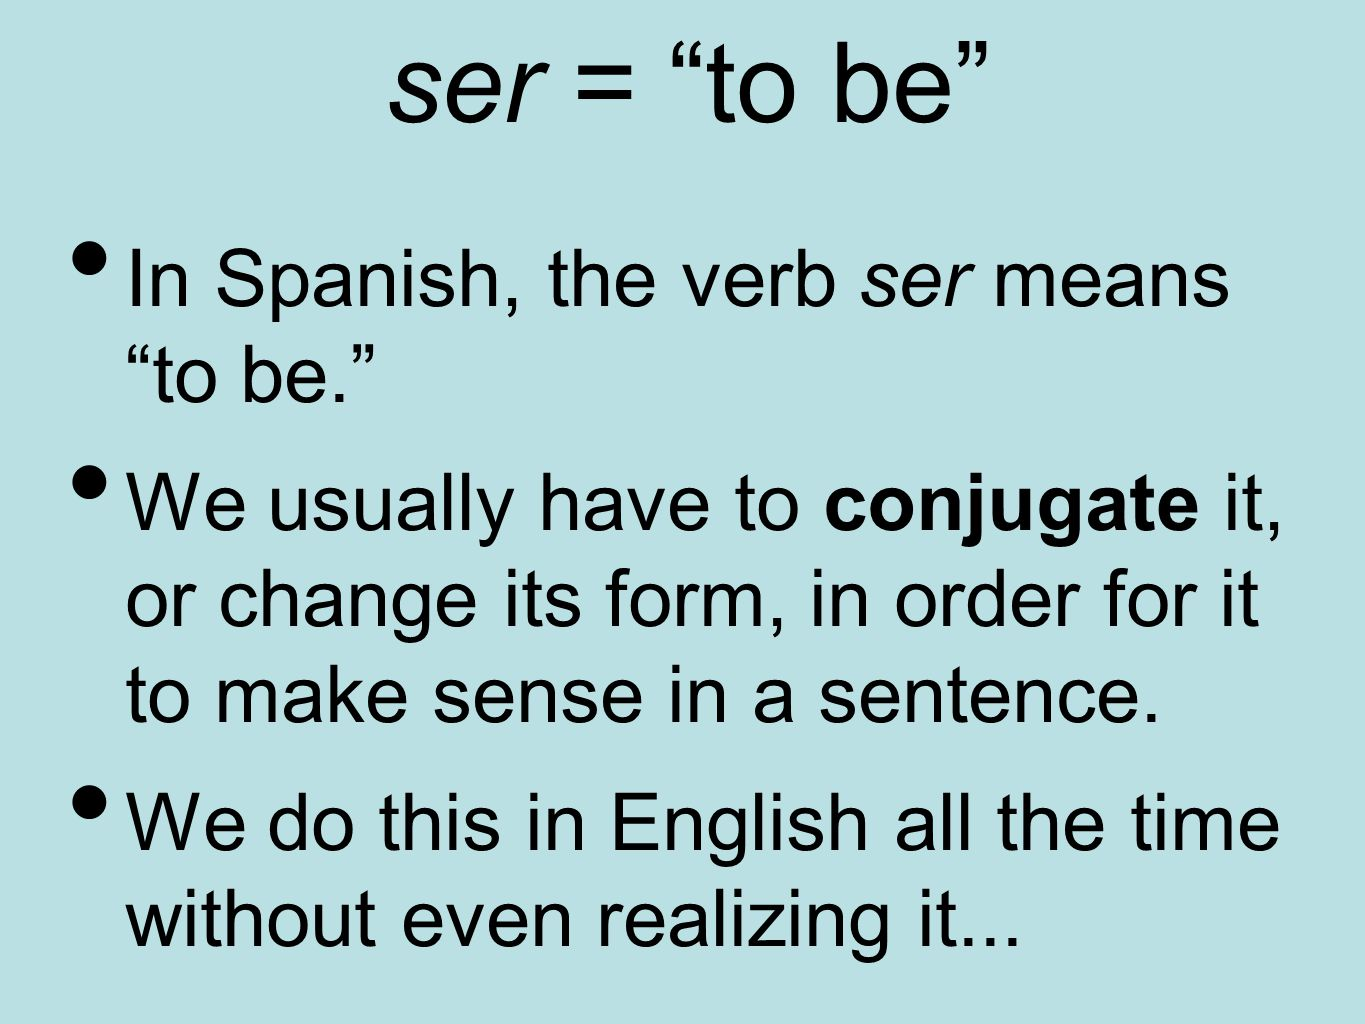 """ser = """"to be"""" In Spanish, the verb ser means """"to be."""" We usually have to conjugate it, or change its form, in order for it to make sense in a sentence"""